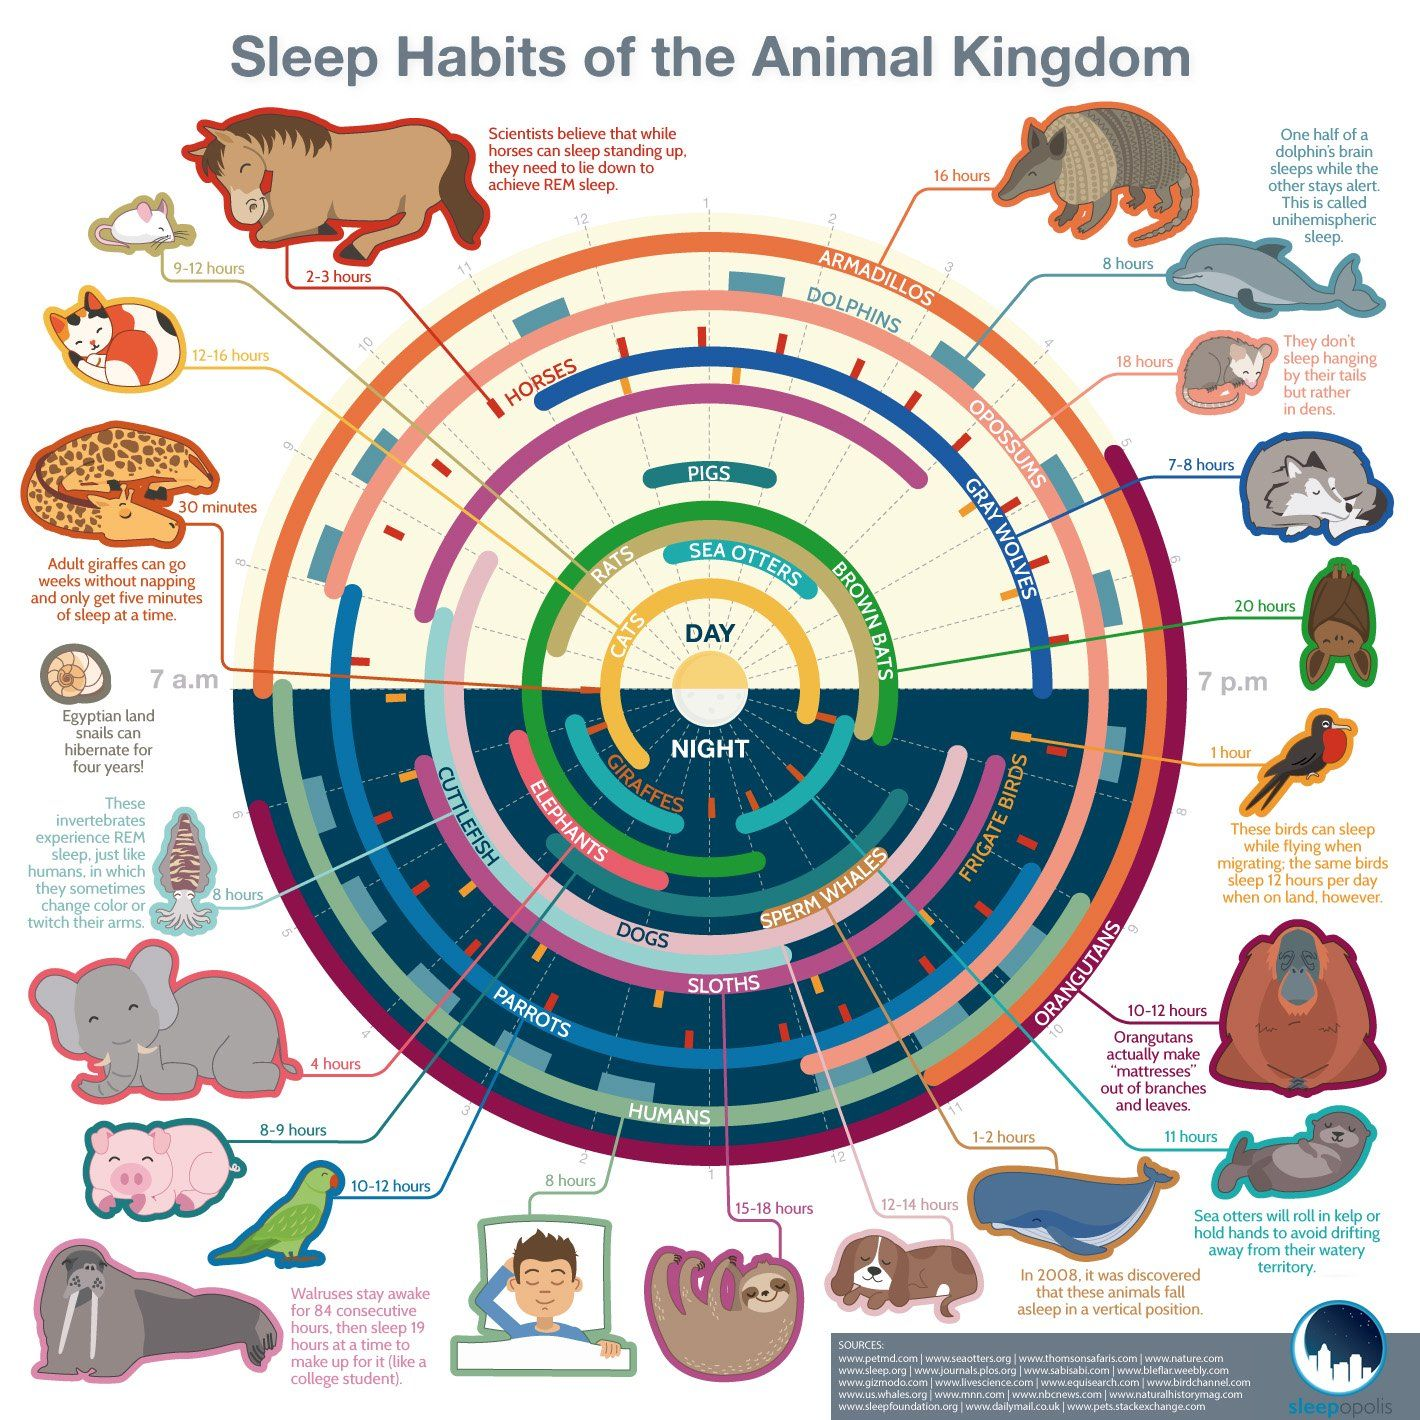 Sleep Habits of the Animal Kingdom